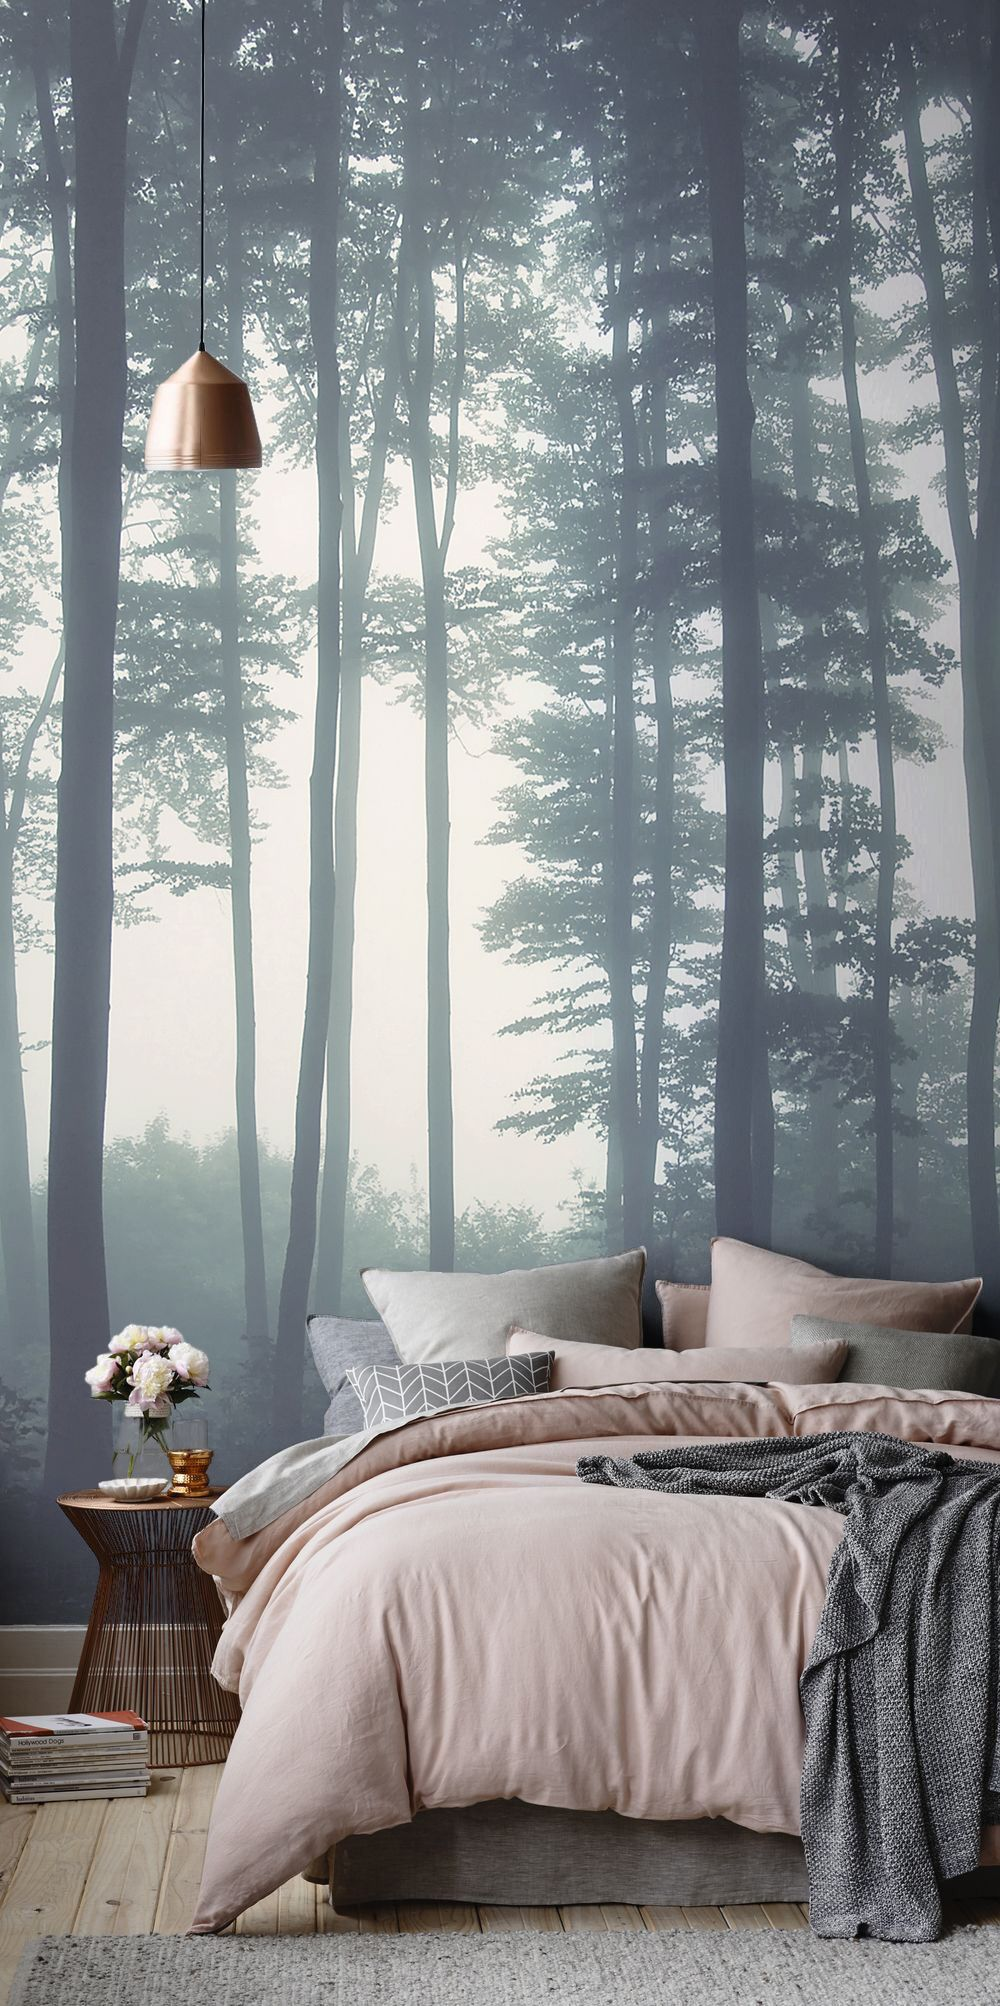 Sea of Trees Forest Mural Wallpaper | MuralsWallpaper.co ...